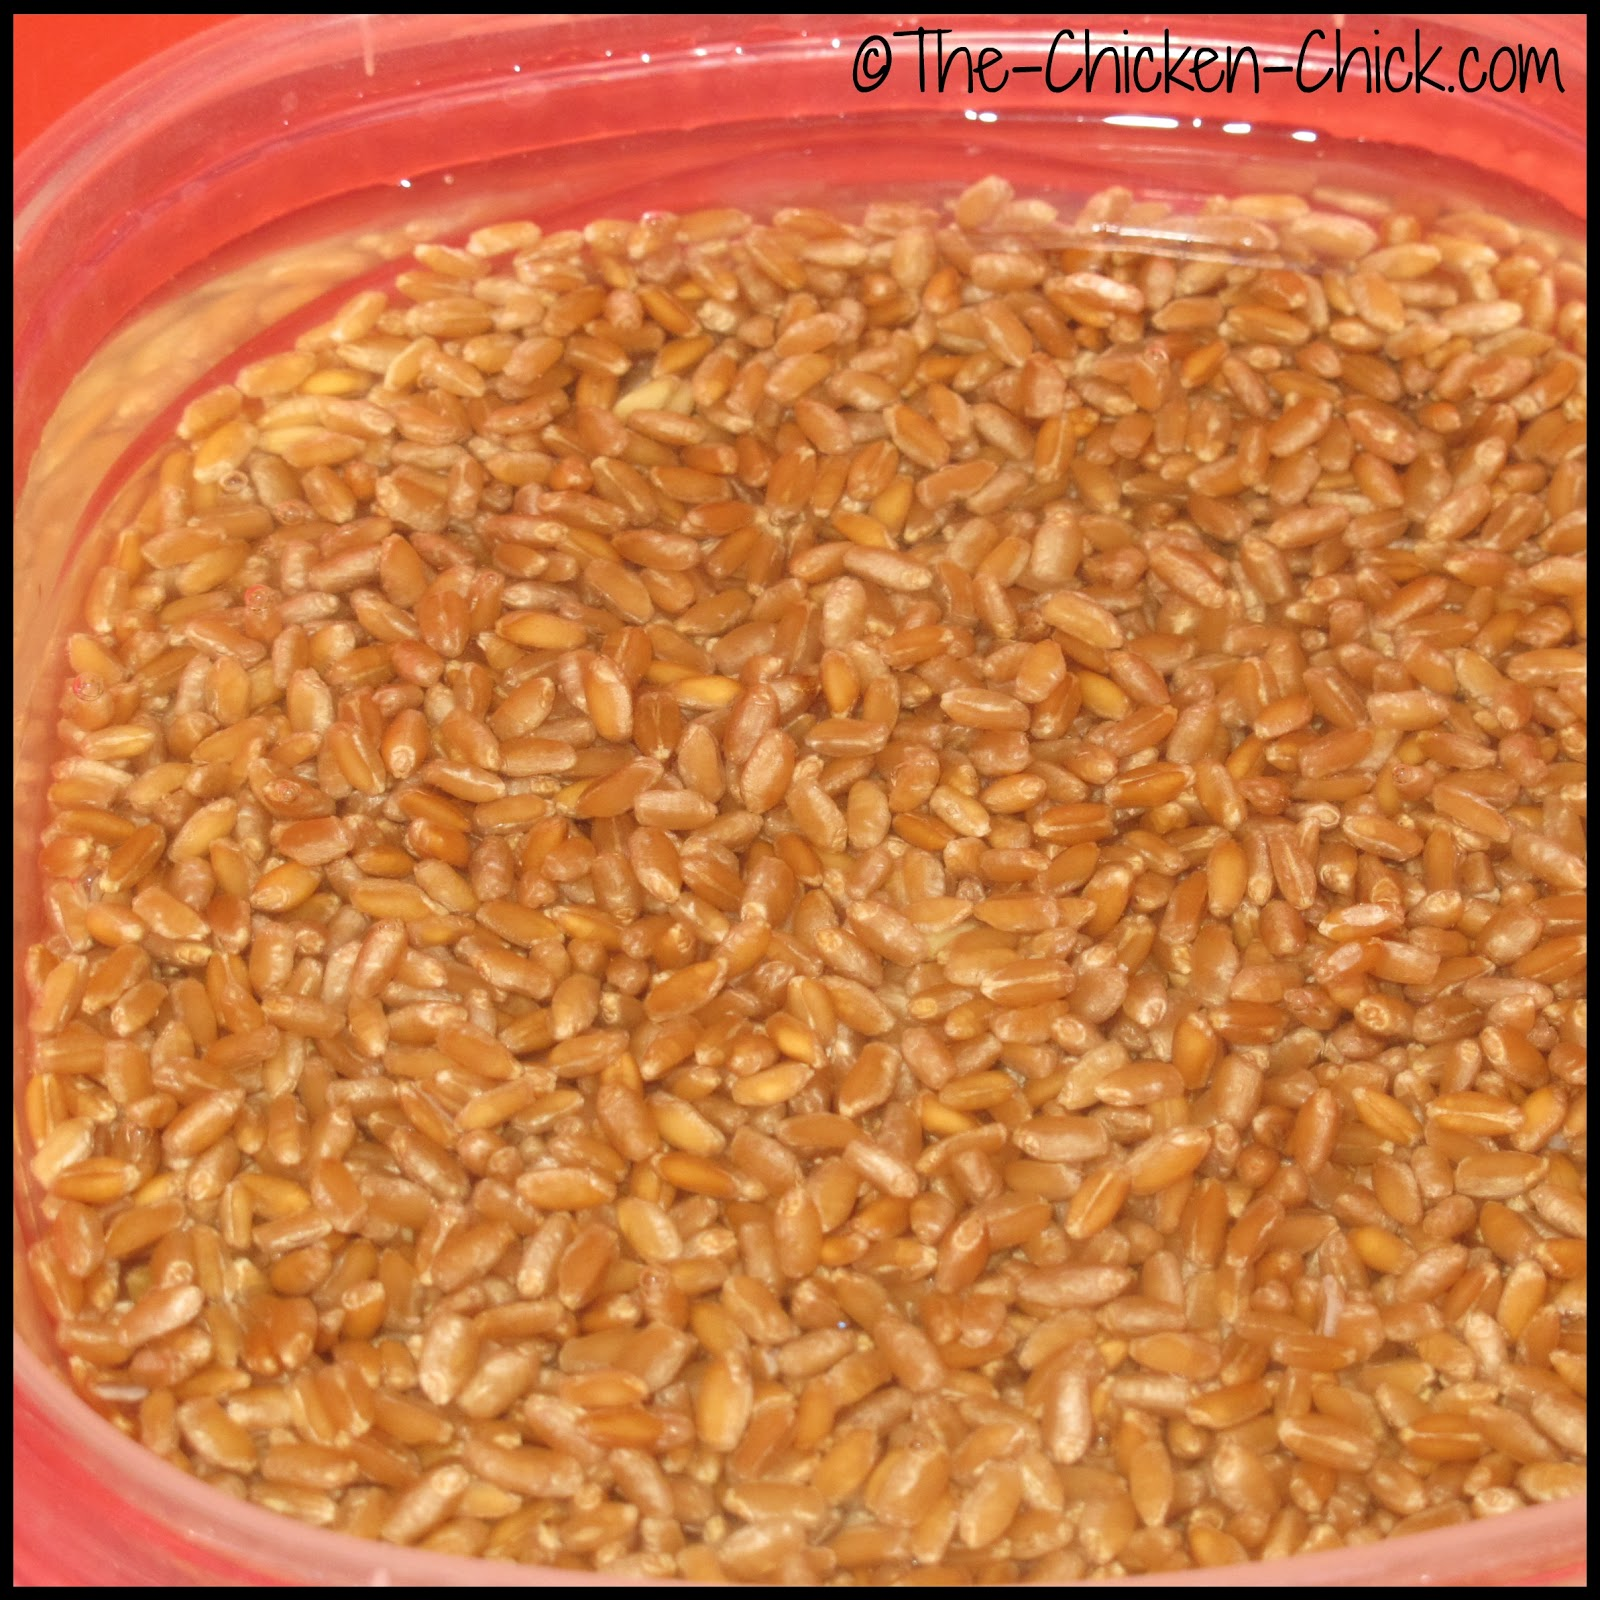 Soaking wheat grains overnight to sprout for chickens